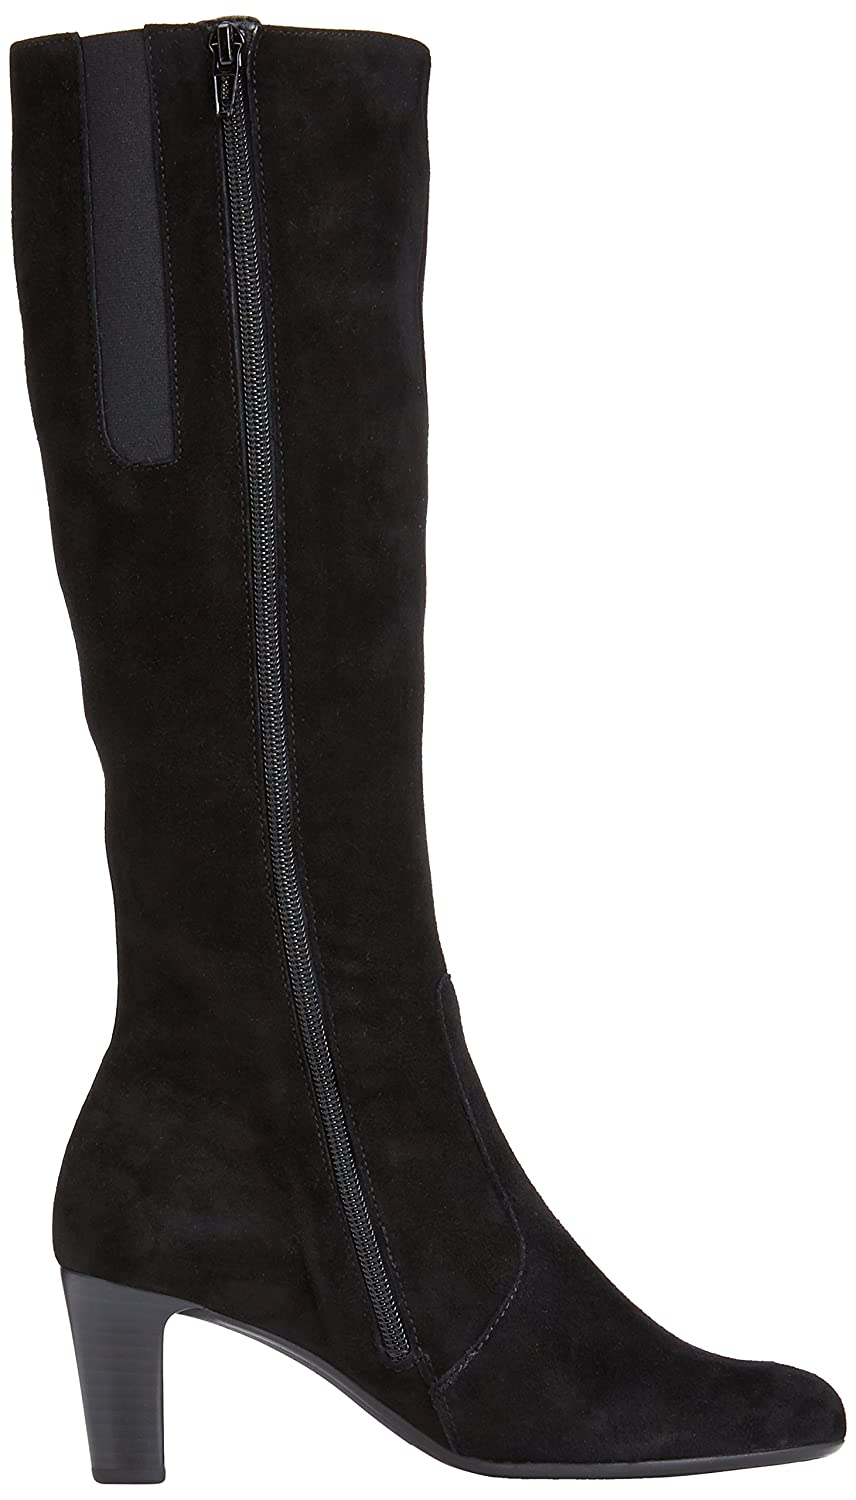 09eb17ad72c Gabor Womens Maybe Slim S Boots 95.668.17 Black Suede (Micro) 5 UK (39 EU)   Amazon.co.uk  Shoes   Bags